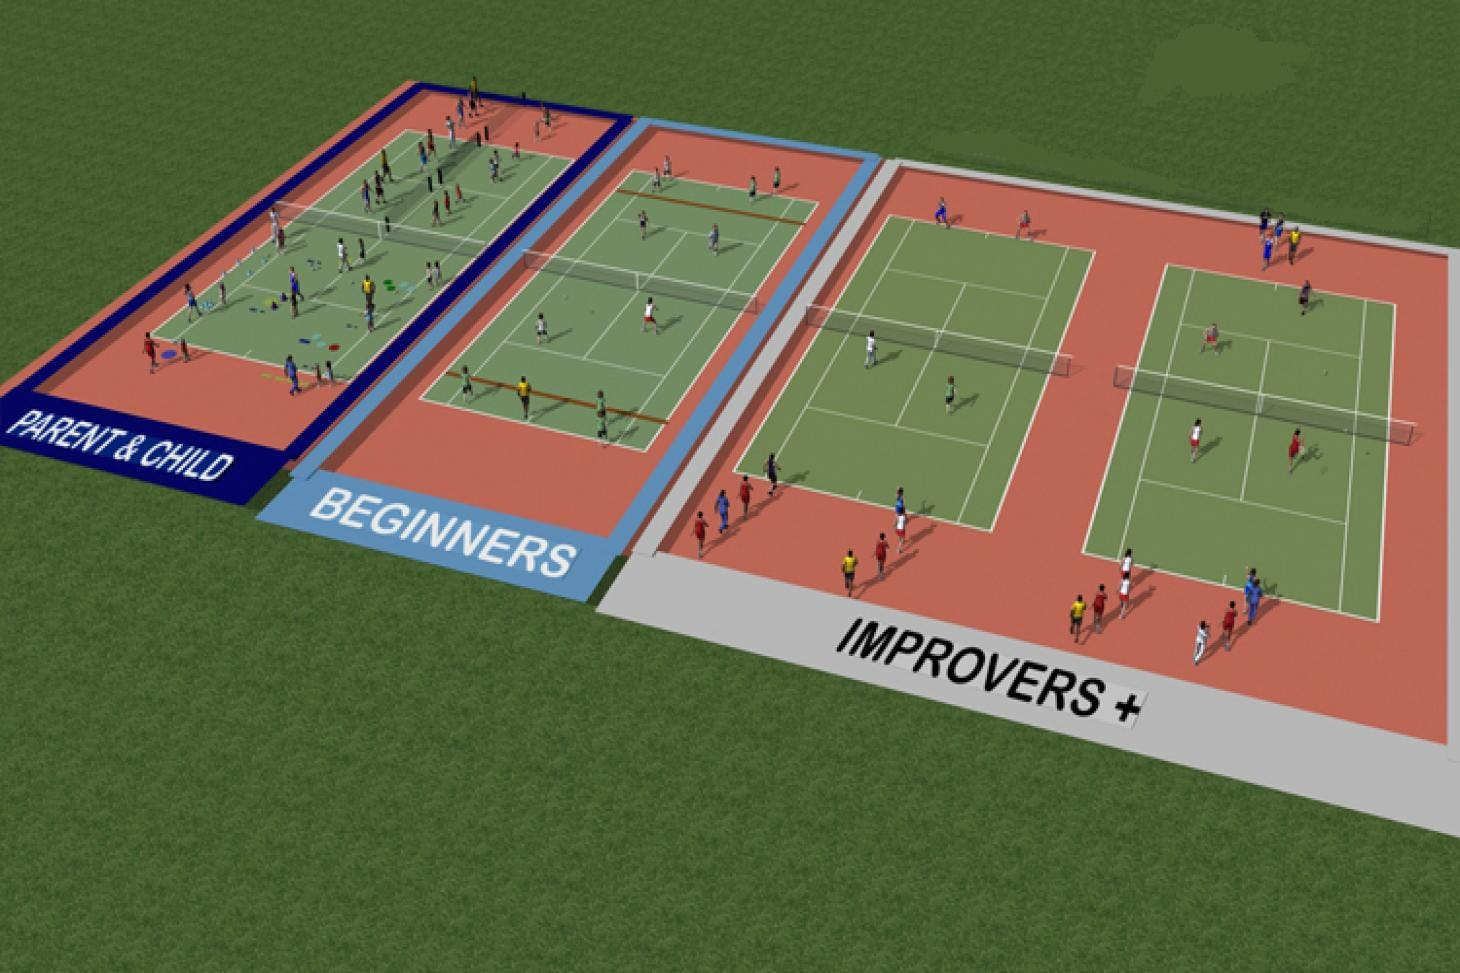 Tamworth Farm Recreation Ground Outdoor | Hard (macadam) tennis court